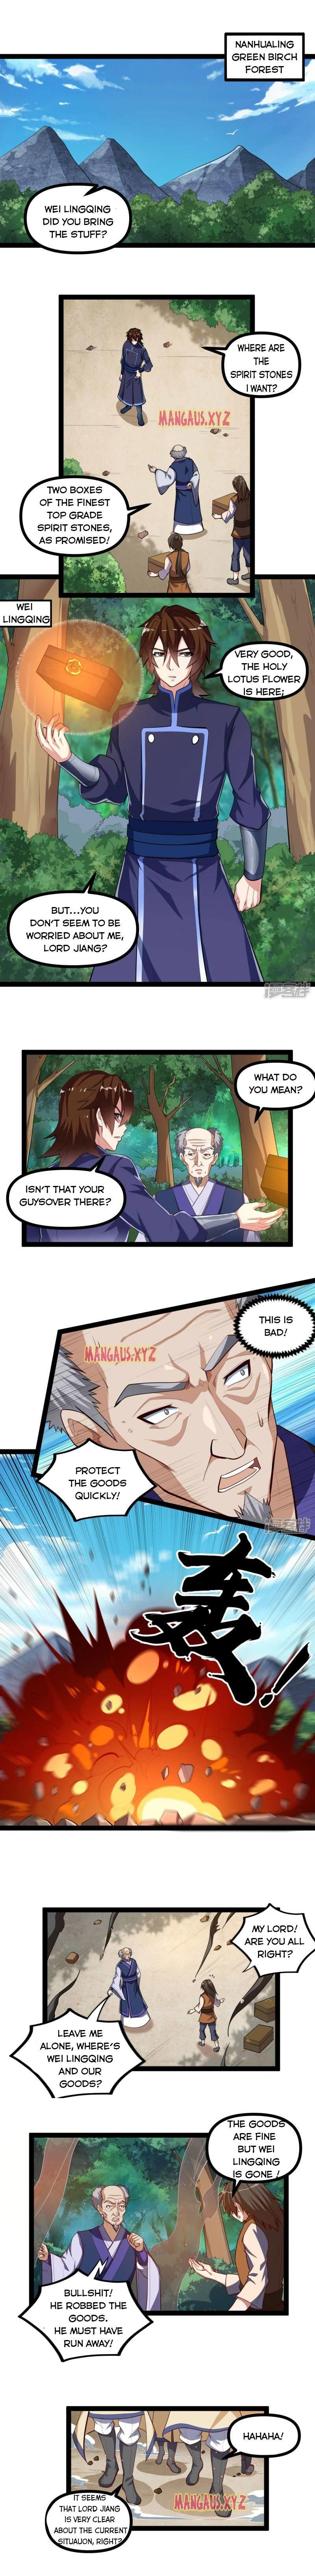 Trample On The River Of Immortality Chapter 139 page 3 - Mangakakalots.com